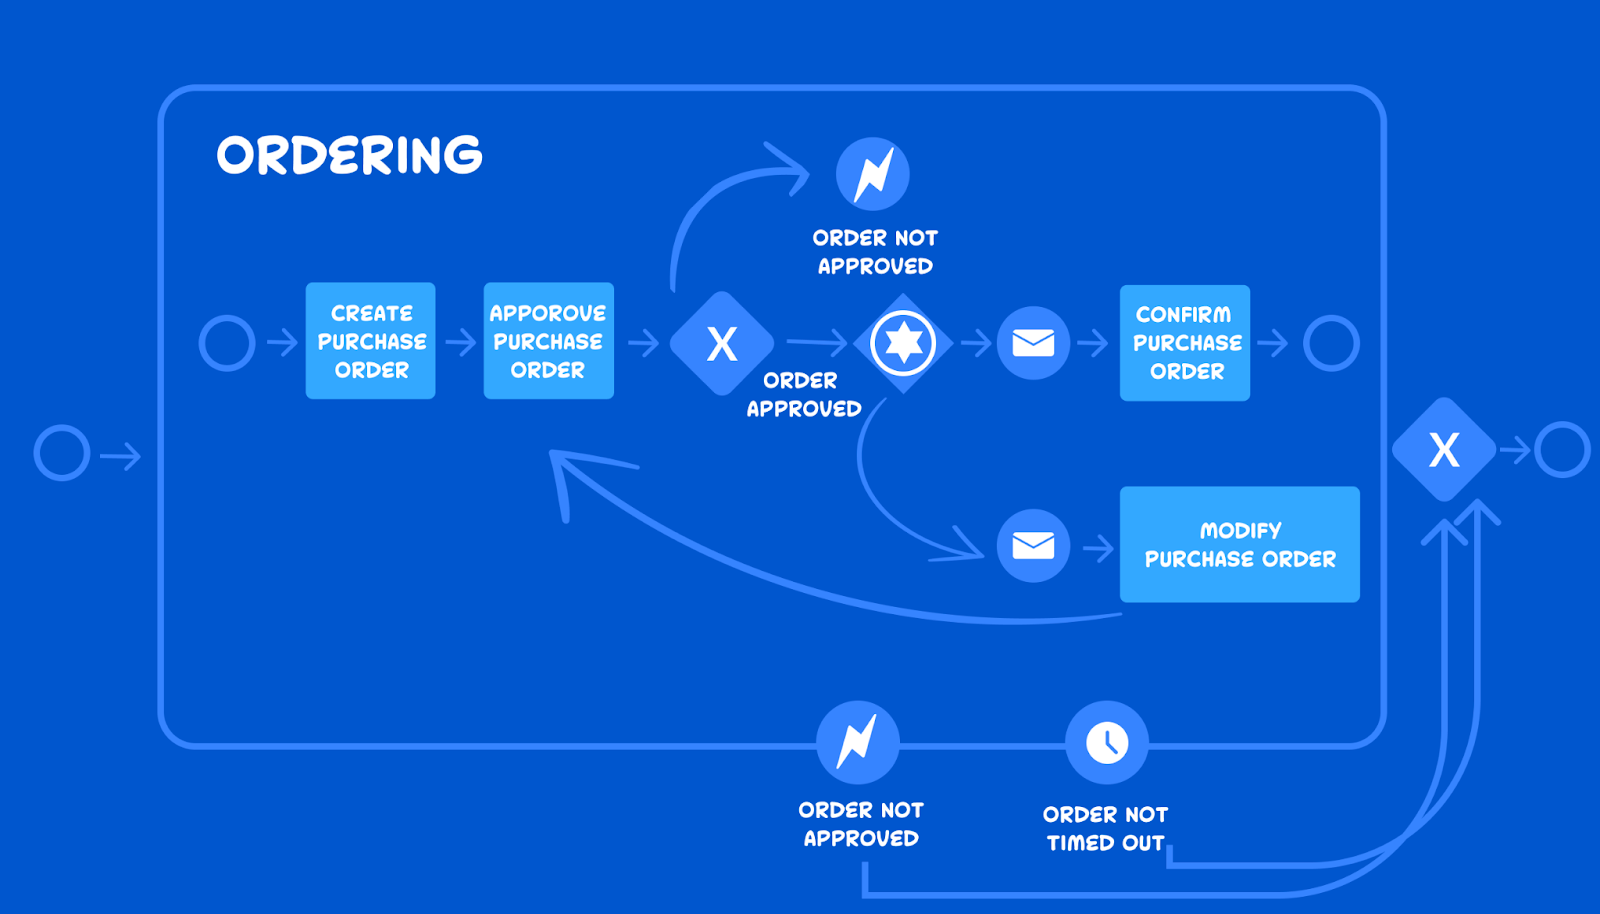 business process model of an ordering process